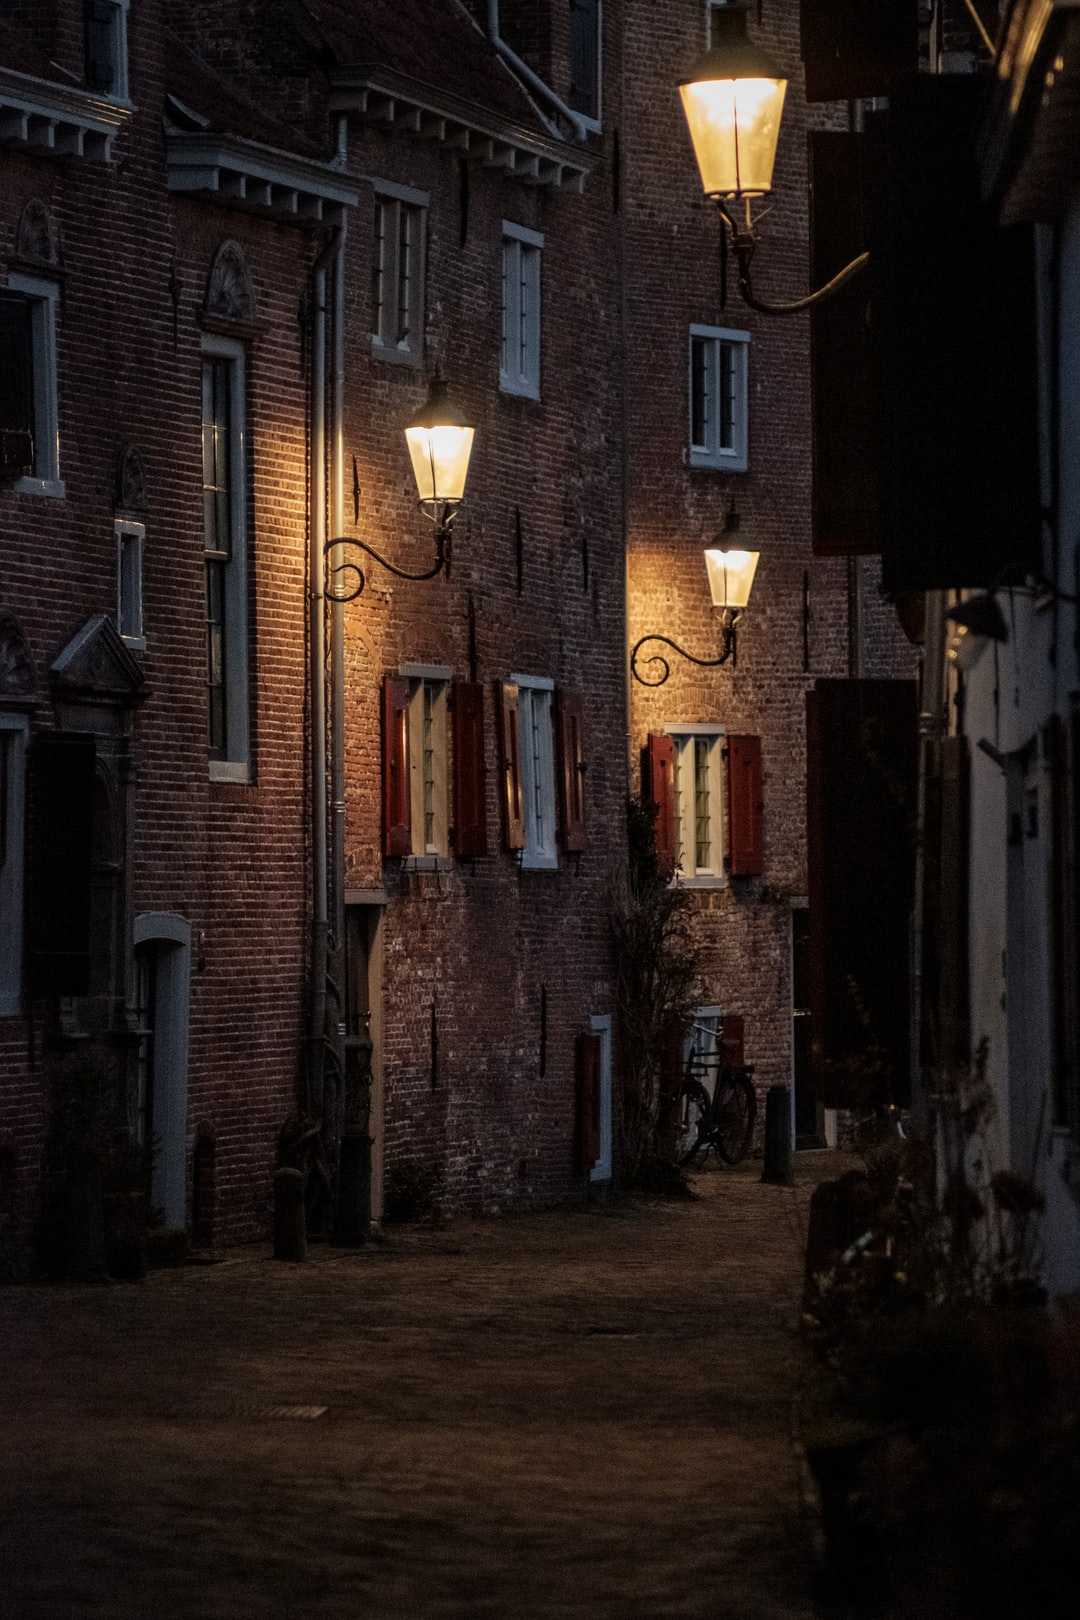 A walk around town with a 300mm lens provides for some interesting images but also some interesting challenges.  Amersfoort Muurhuizen is a pretty cramped place with its old age and therefore narrow streets. As the final rays of light evaporated from the streets, I set out to document them the best I could.